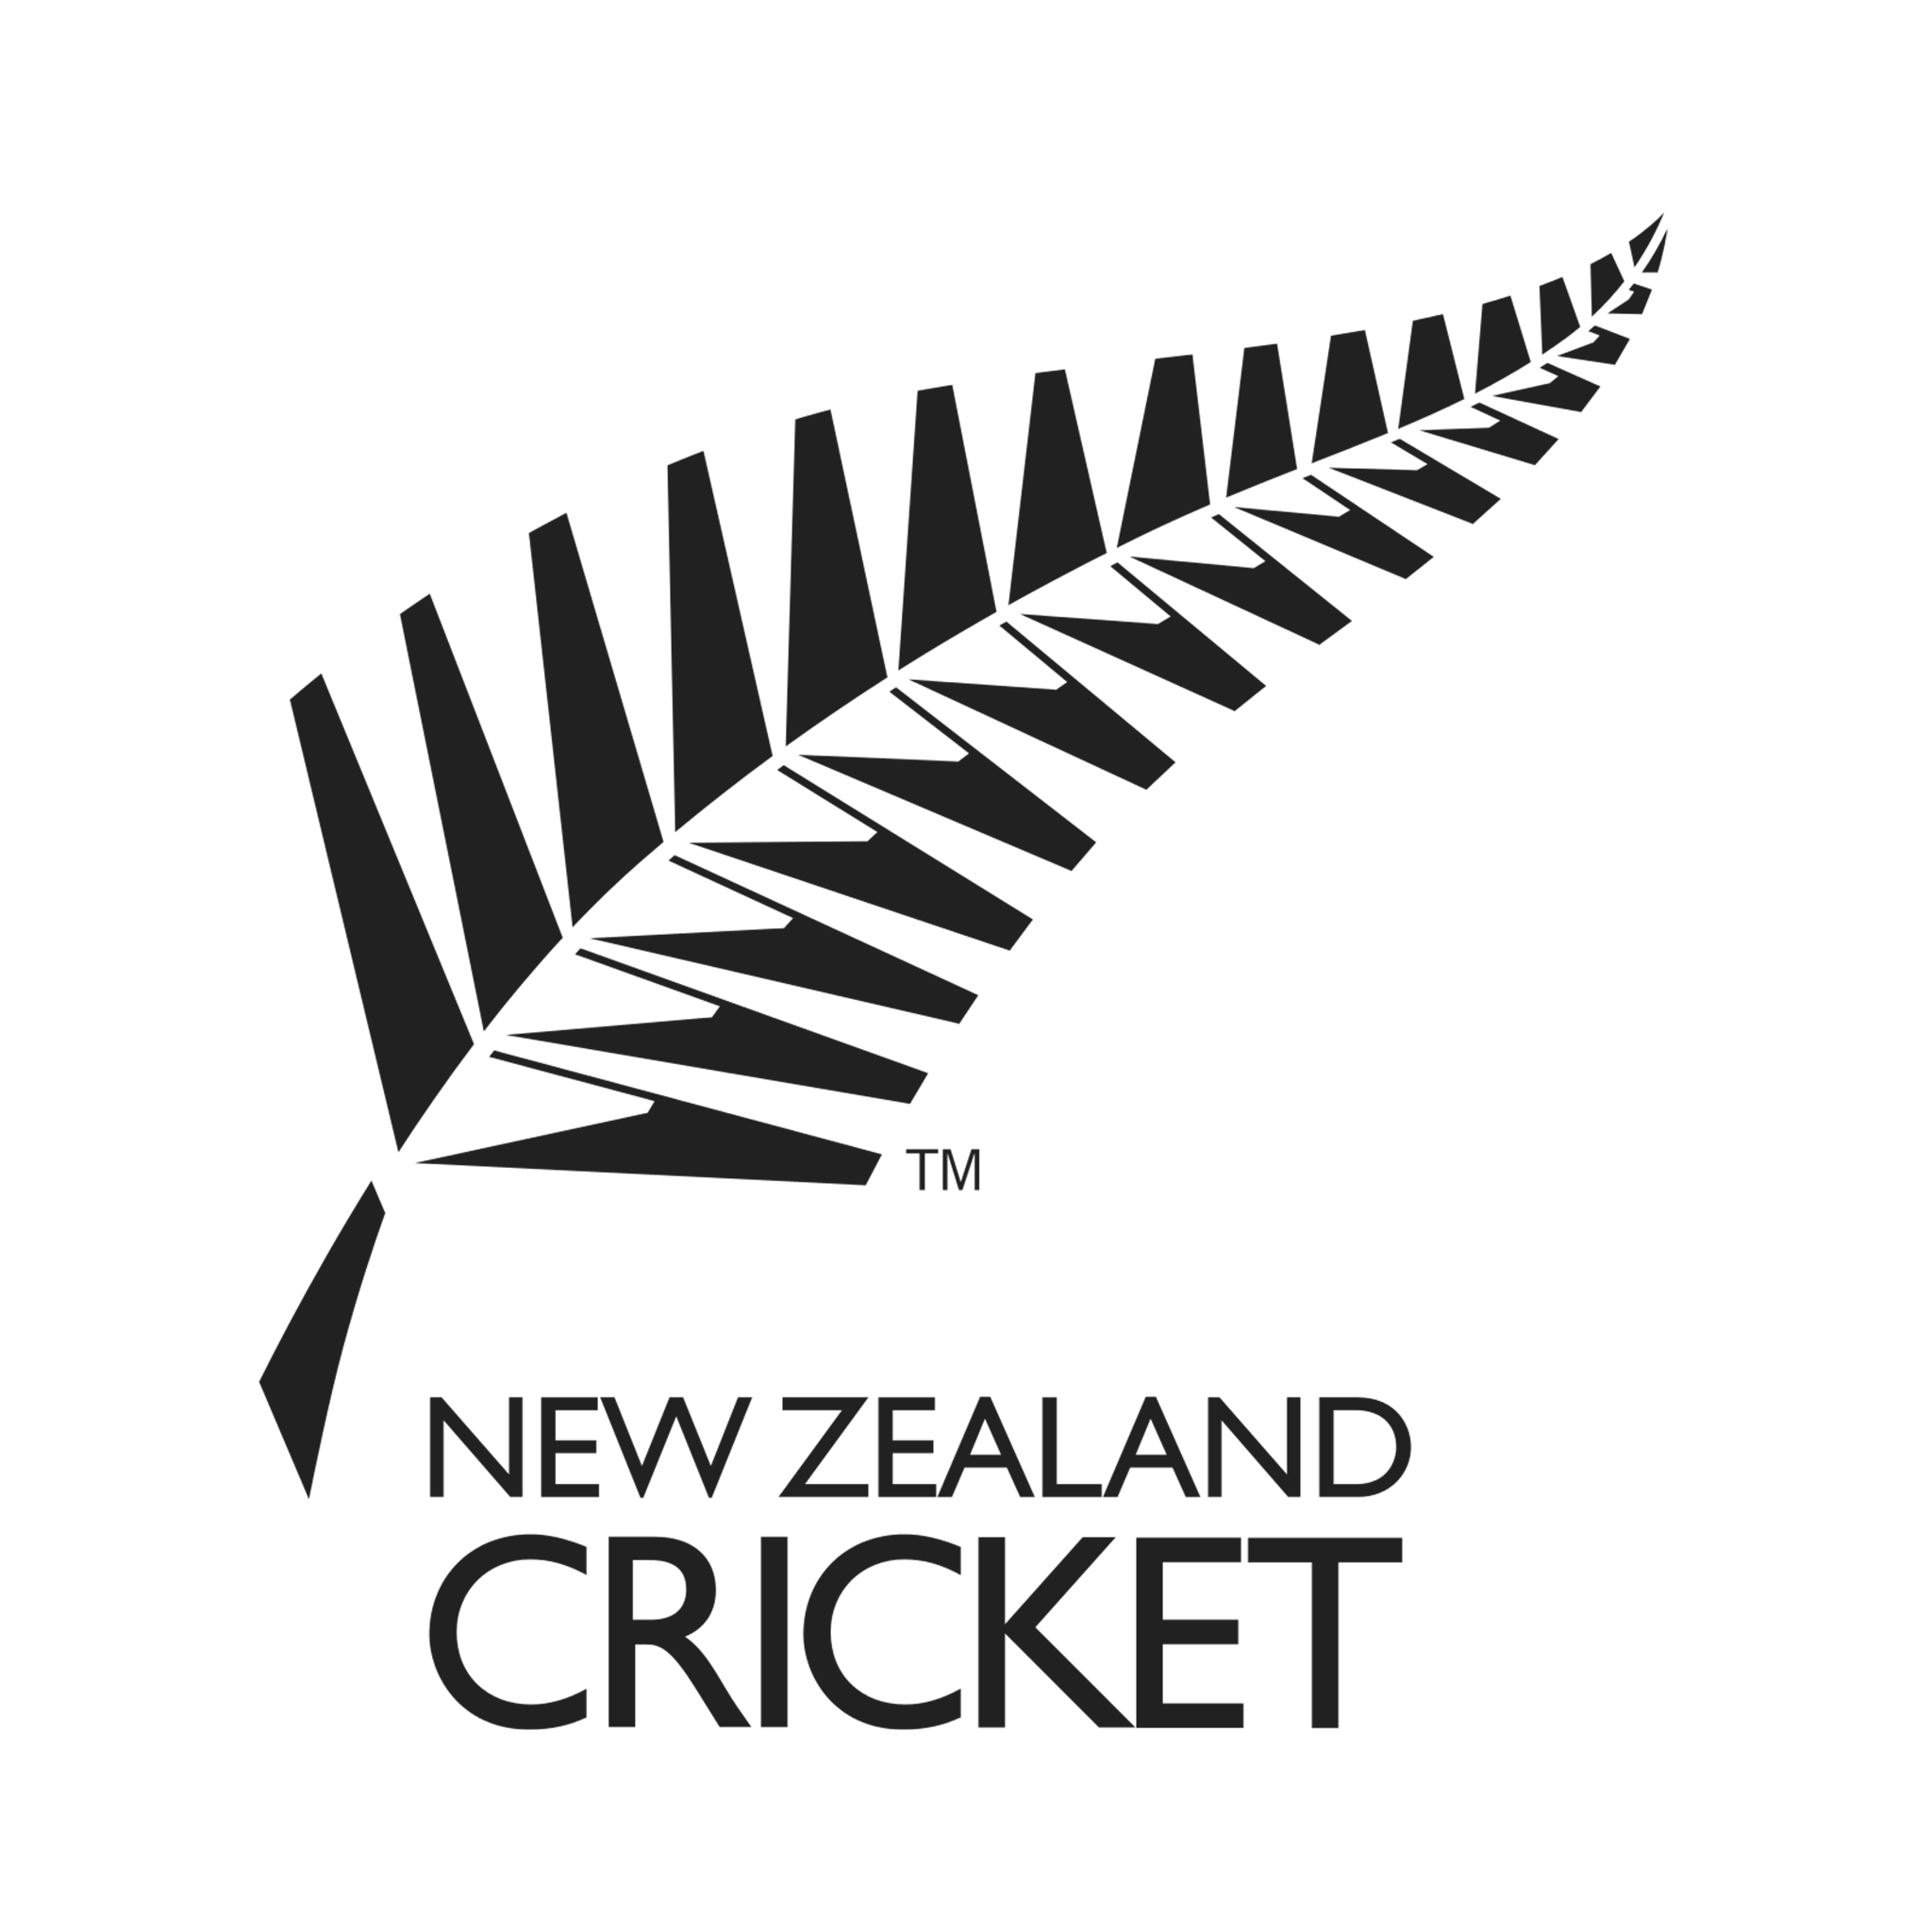 New Zealand cricket team logo